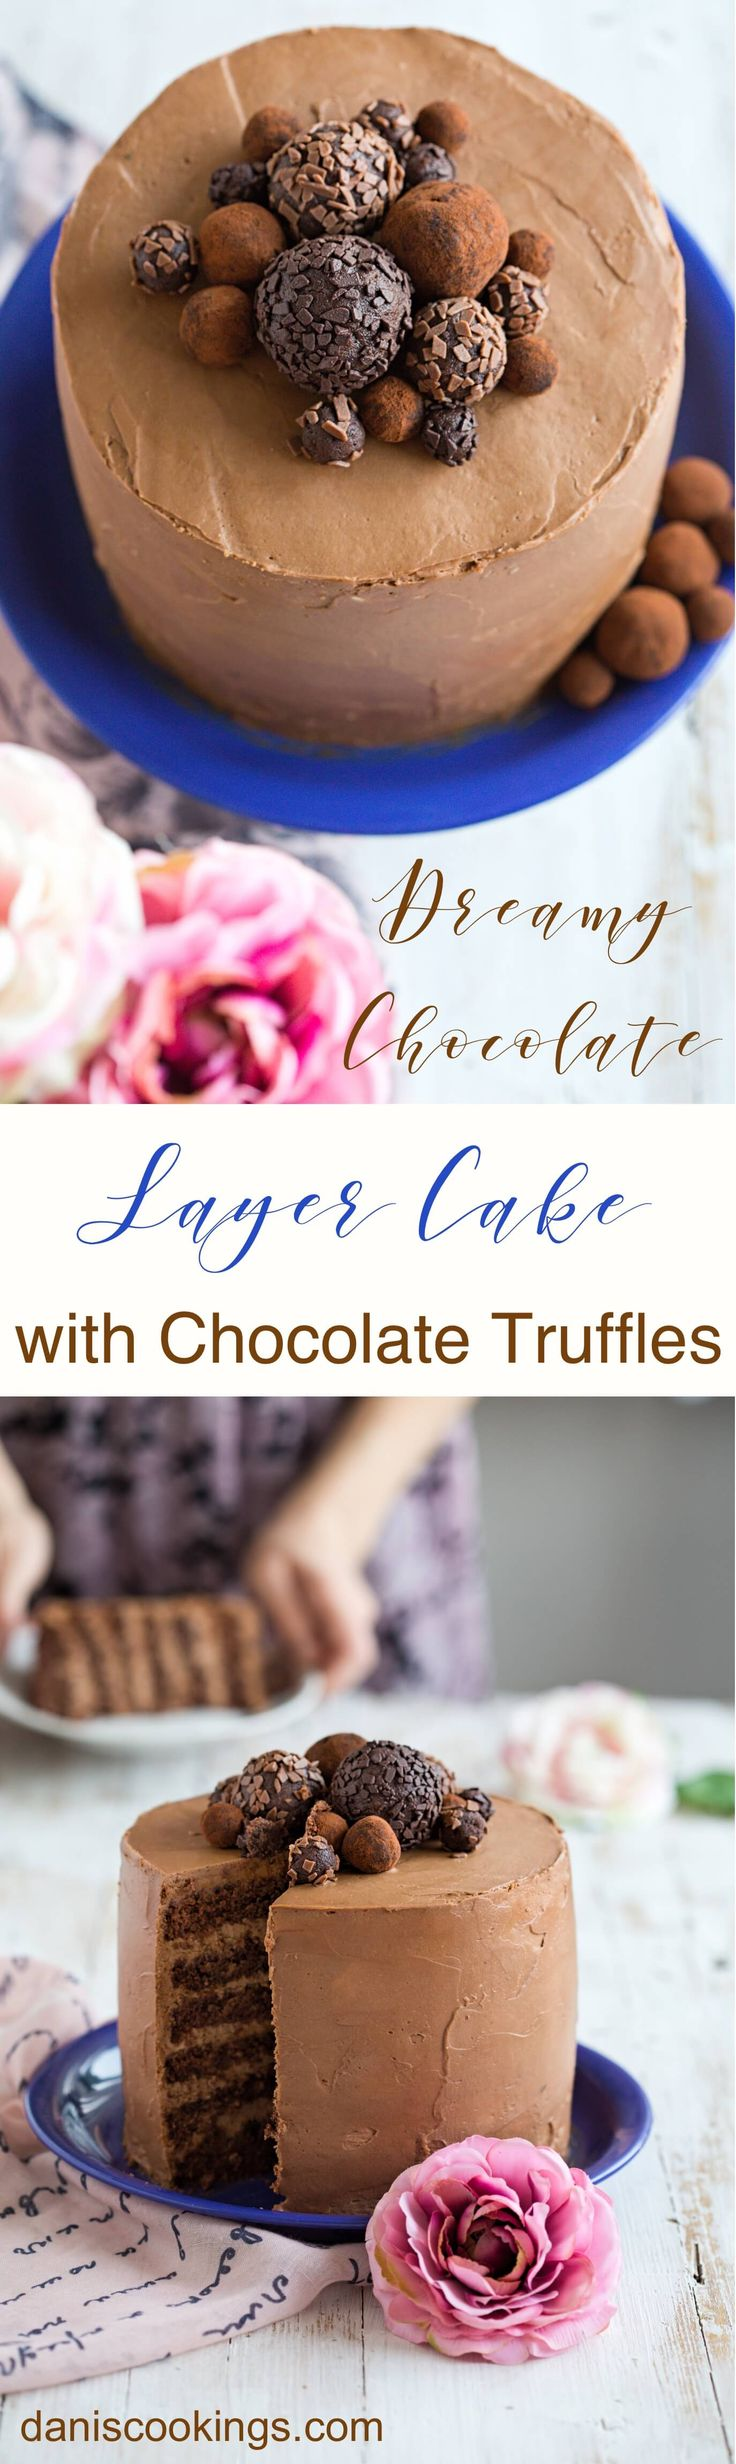 Dreamy Chocolate six layer Cake with delicious ChocolateTruffles - daniscookings.com